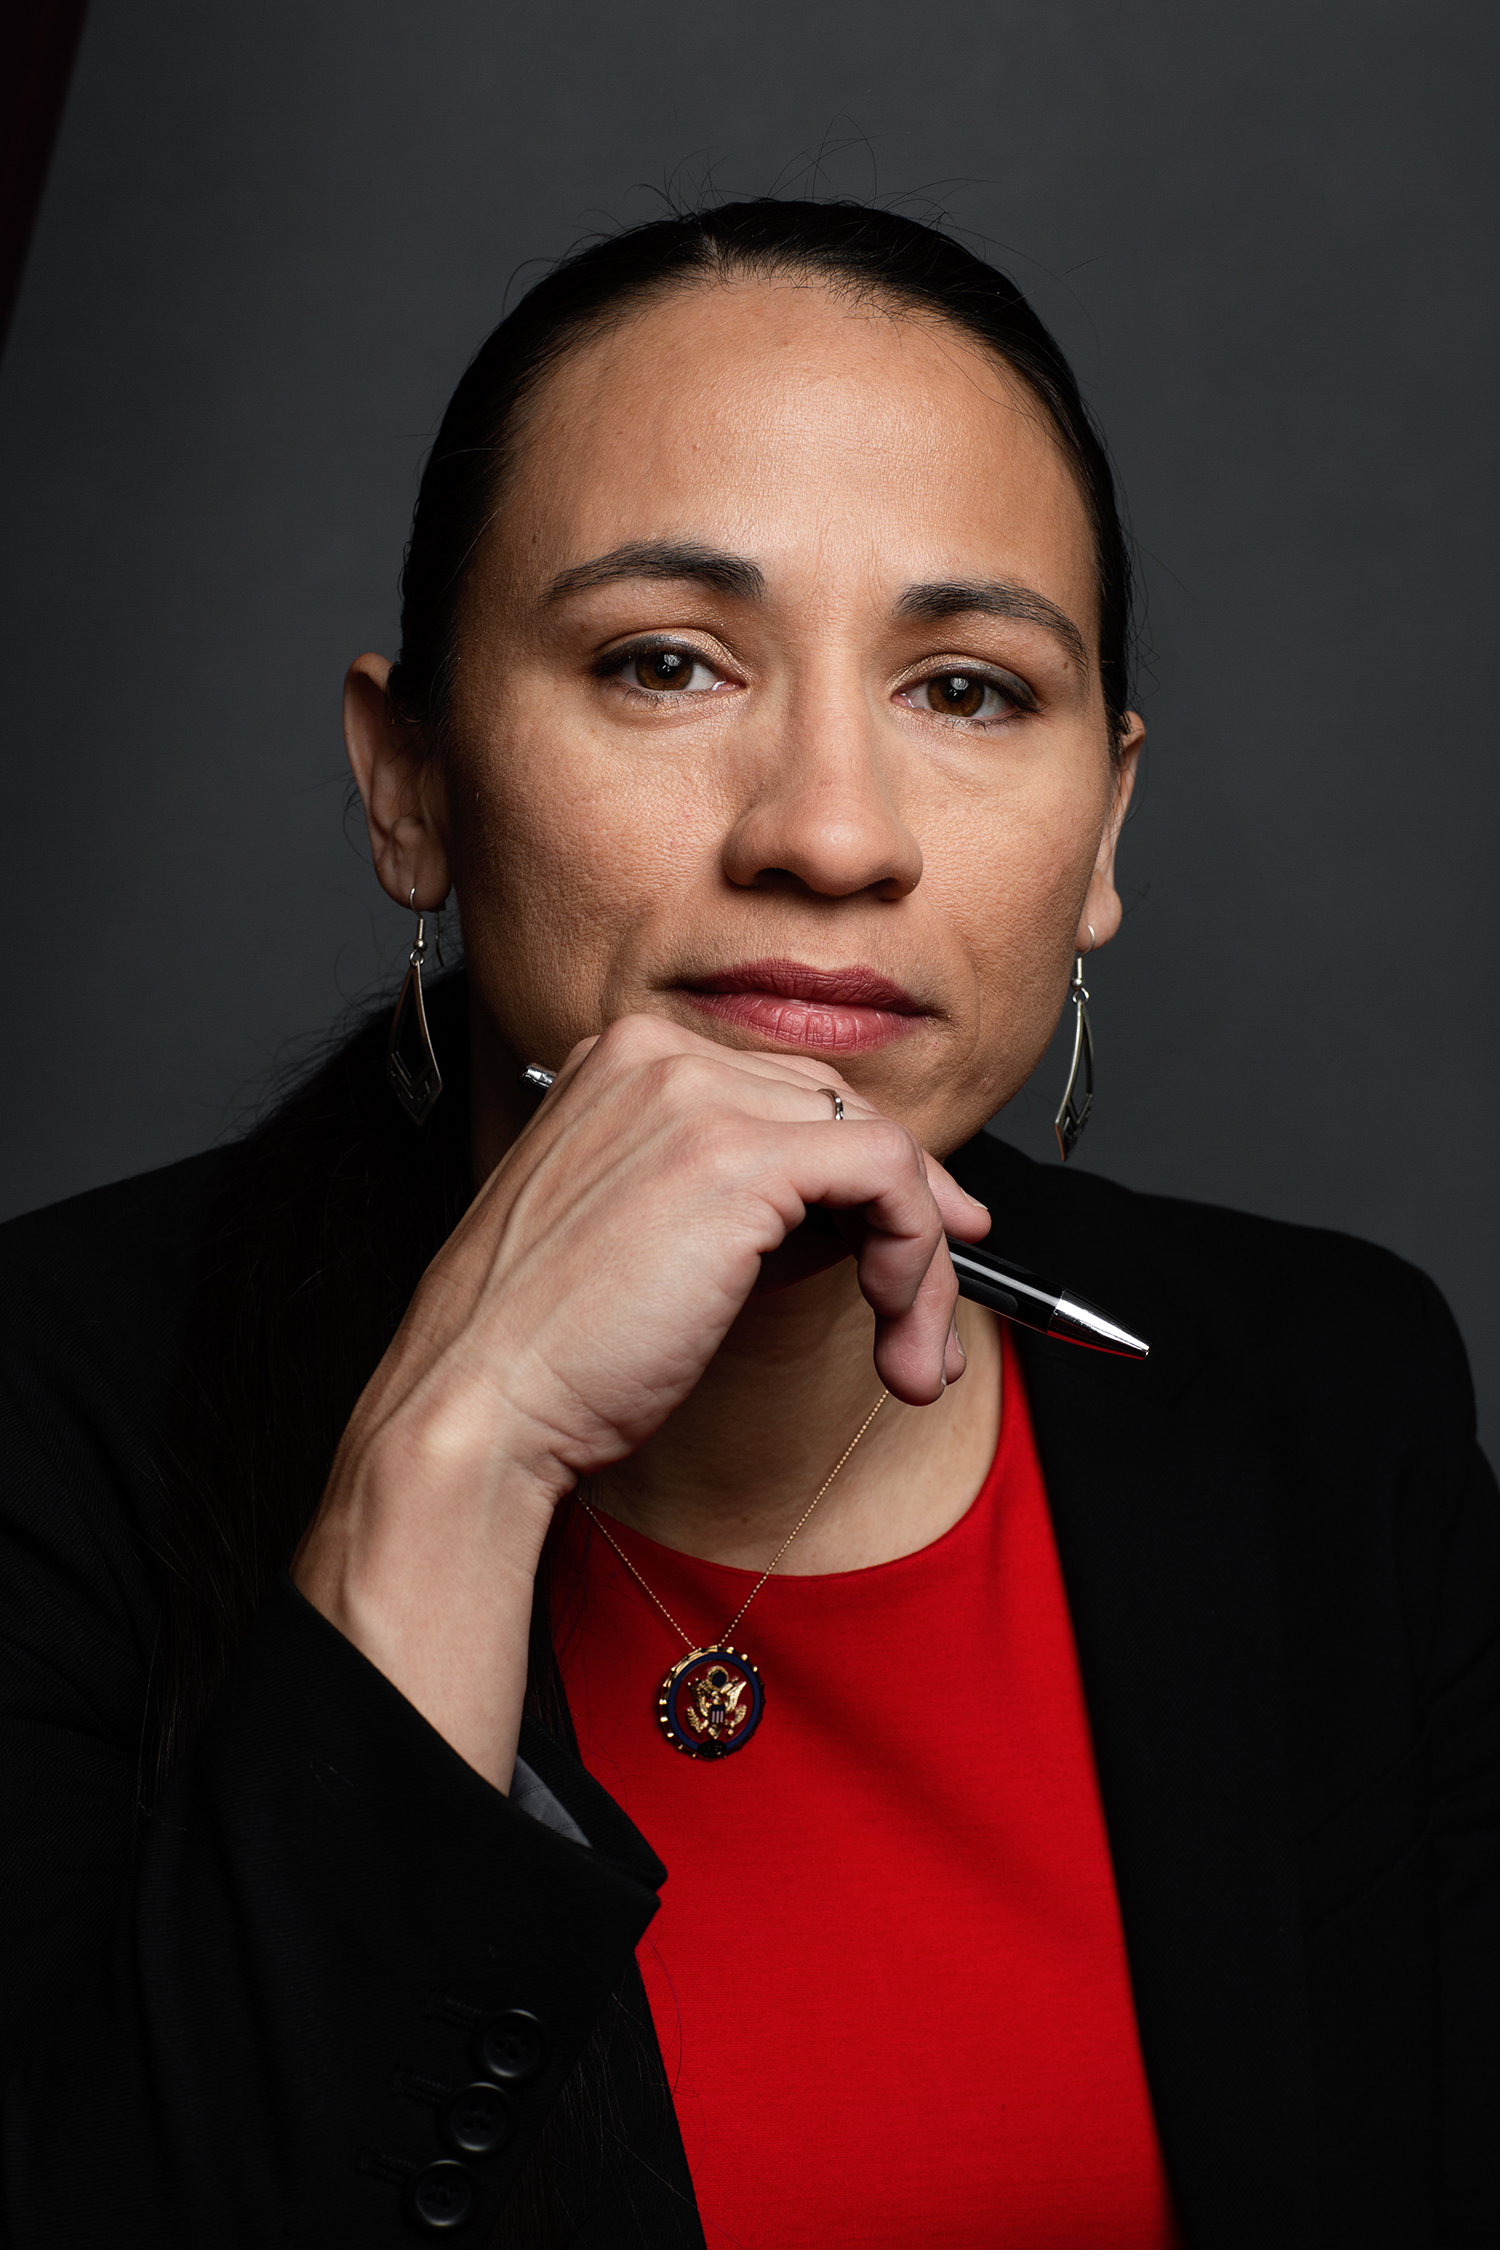 Sharice Davids *****HOLD FOR WOMEN IN CONGRESS PROJECT**** Sharice Lynnette Davids  is an American attorney, former mixed martial artist and politician serving as the U.S. Representative for Kansas's 3rd congressional district since 2019. A member of the Democratic Party and is an enrolled member of the Ho-Chunk (Winnebago) nation. 